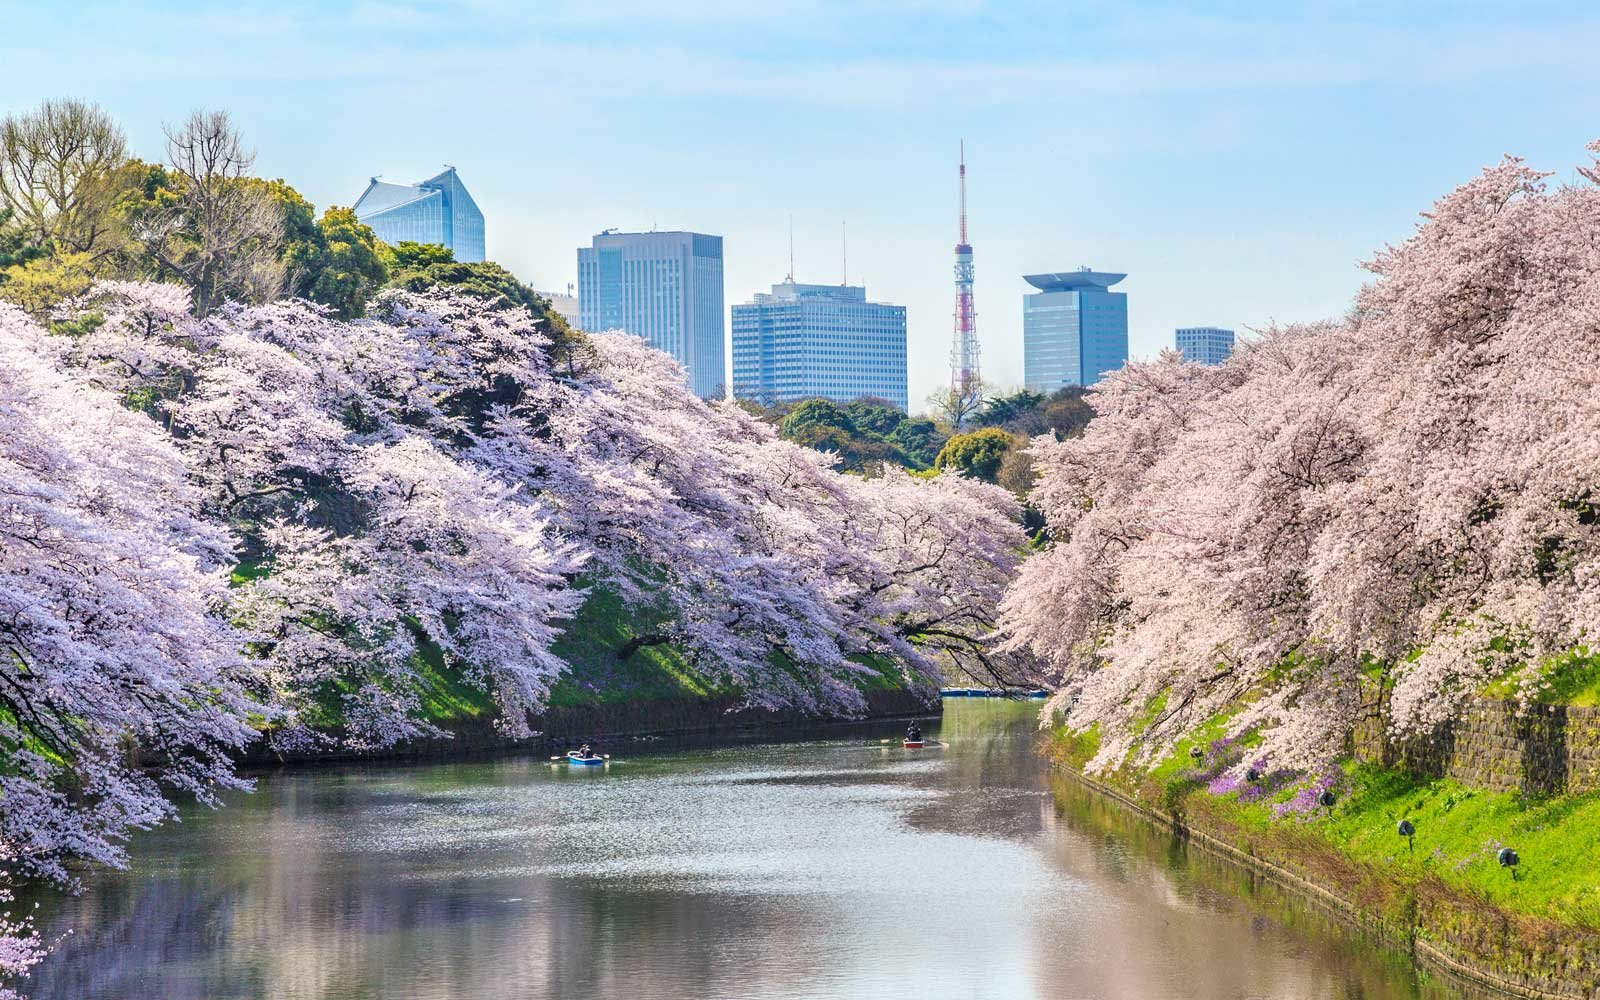 View of the Tokyo Tower in Japan, during cherry blossom season